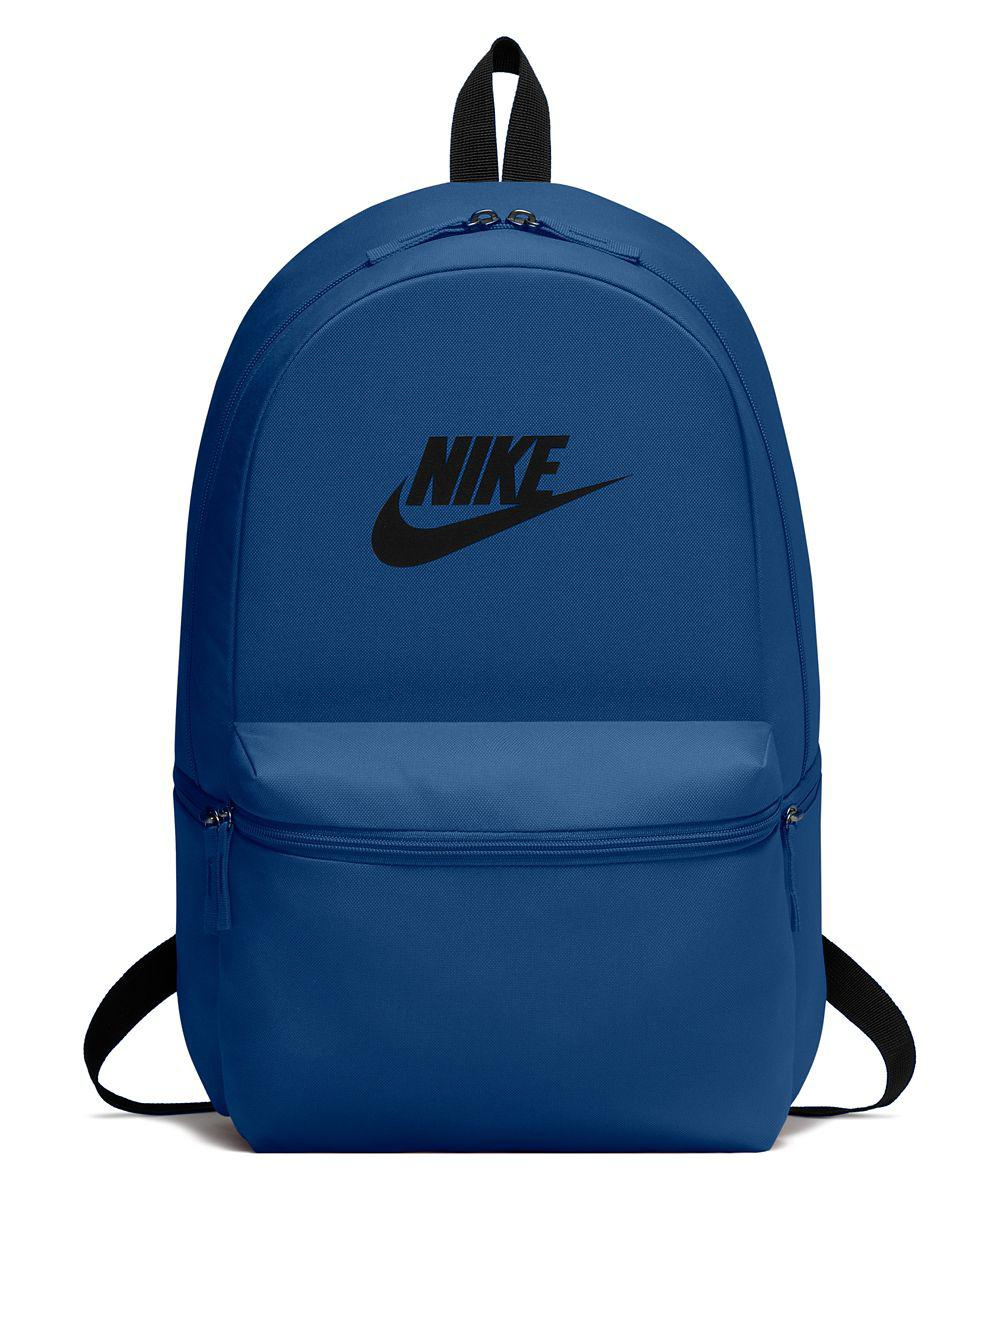 size 40 410c0 e0620 Nike Heritage Logo Backpack in Blue for Men - Lyst